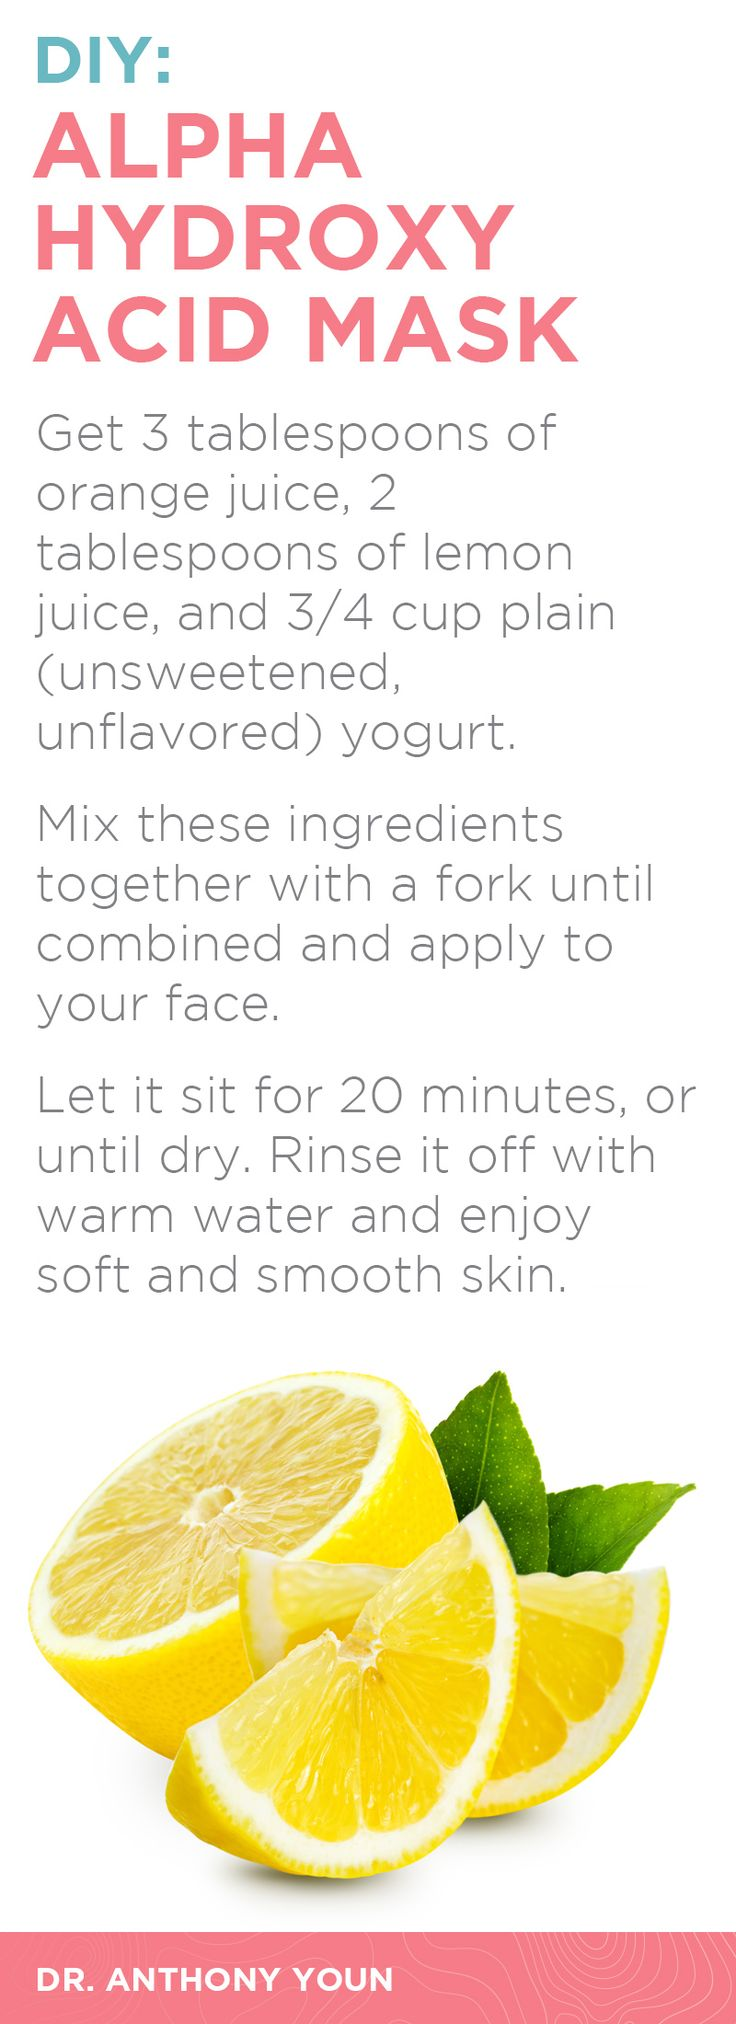 Alpha hydroxy acids (AHAs) are acids that naturally occur in common foods. They lightly exfoliate the skin, removing the upper layer of dead skin cells and exposing the younger, smoother layer underneath. Use this DIY mask to help stimulate new cell growth for soft and clear skin.